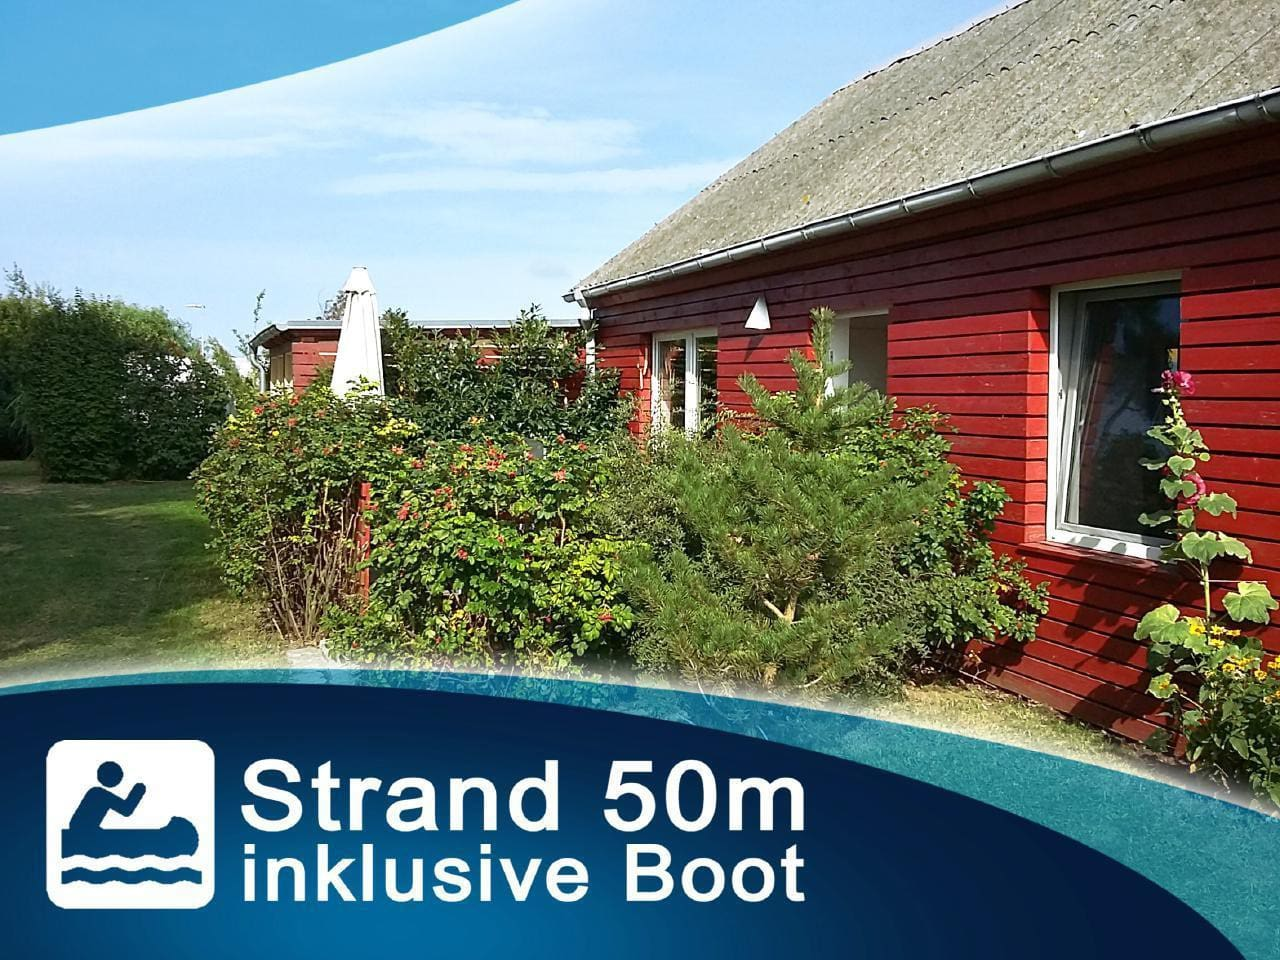 holiday house - baltic sea - near beach - with boat - cheap - accommodation - vacation rental - cottage